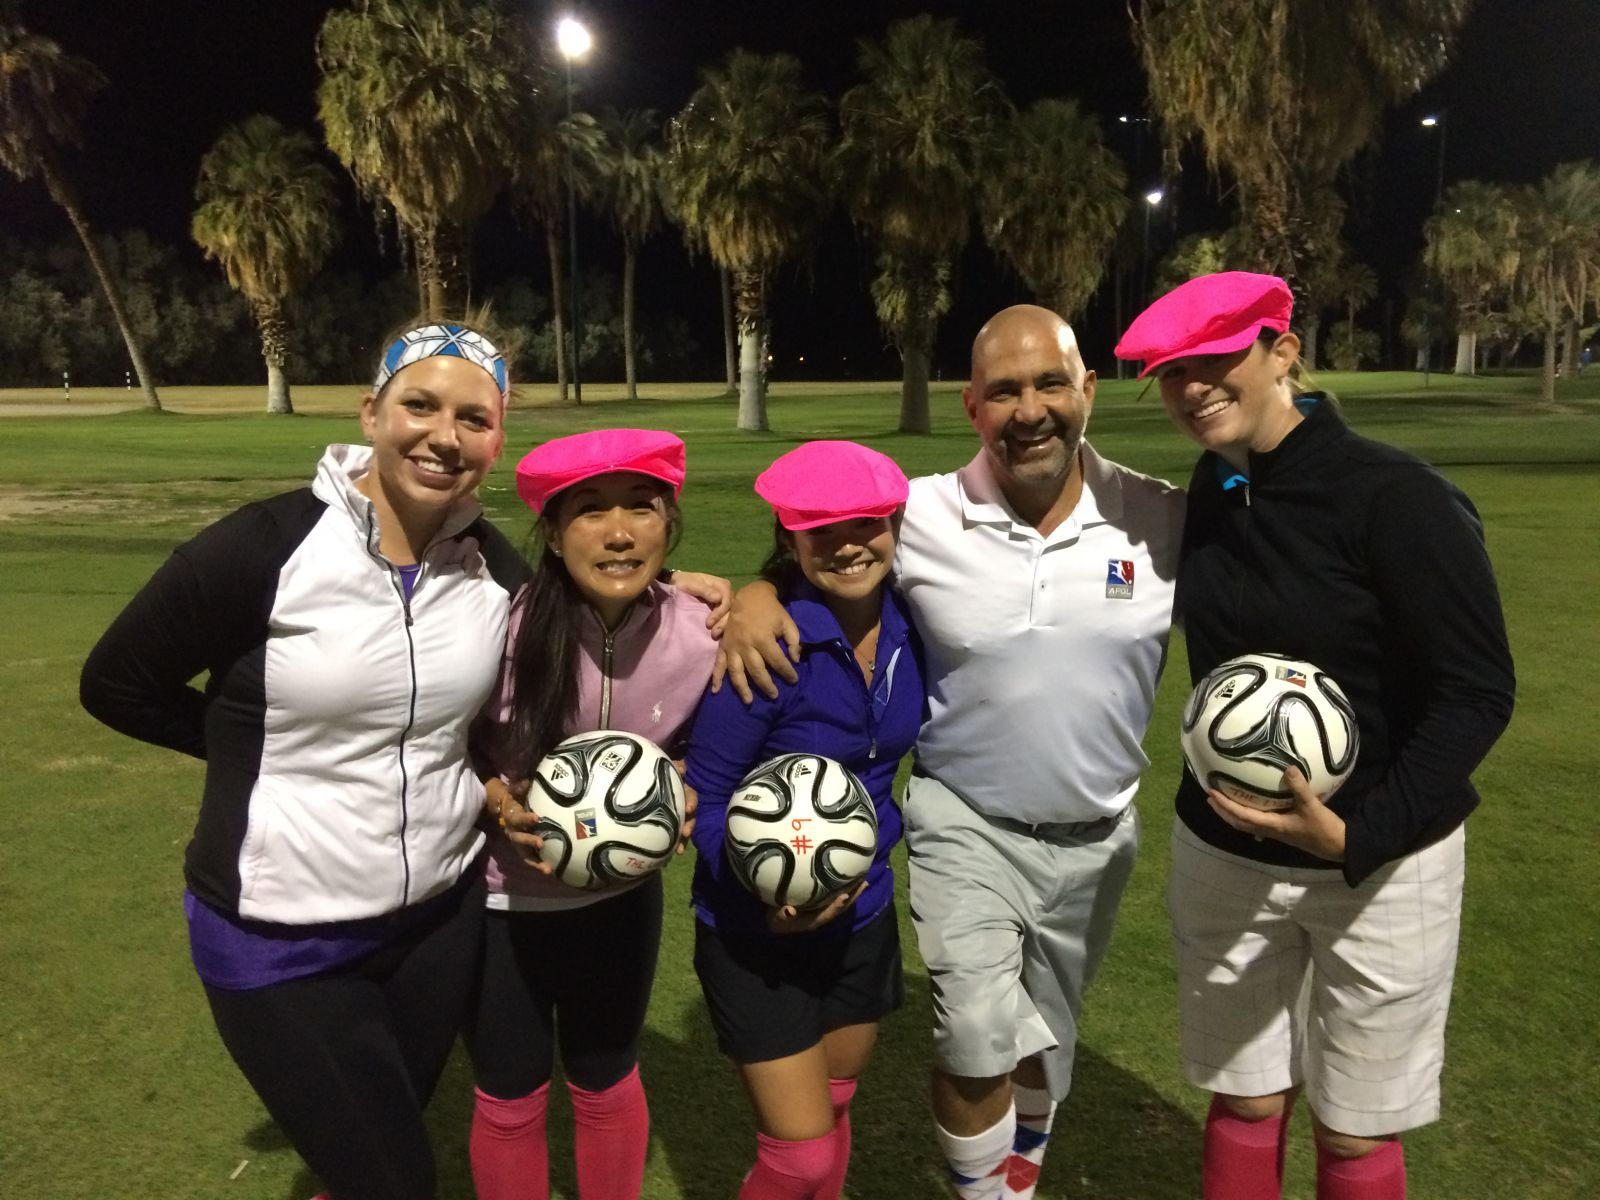 FootGolf players pose for a picture during their round at The Light at Indio